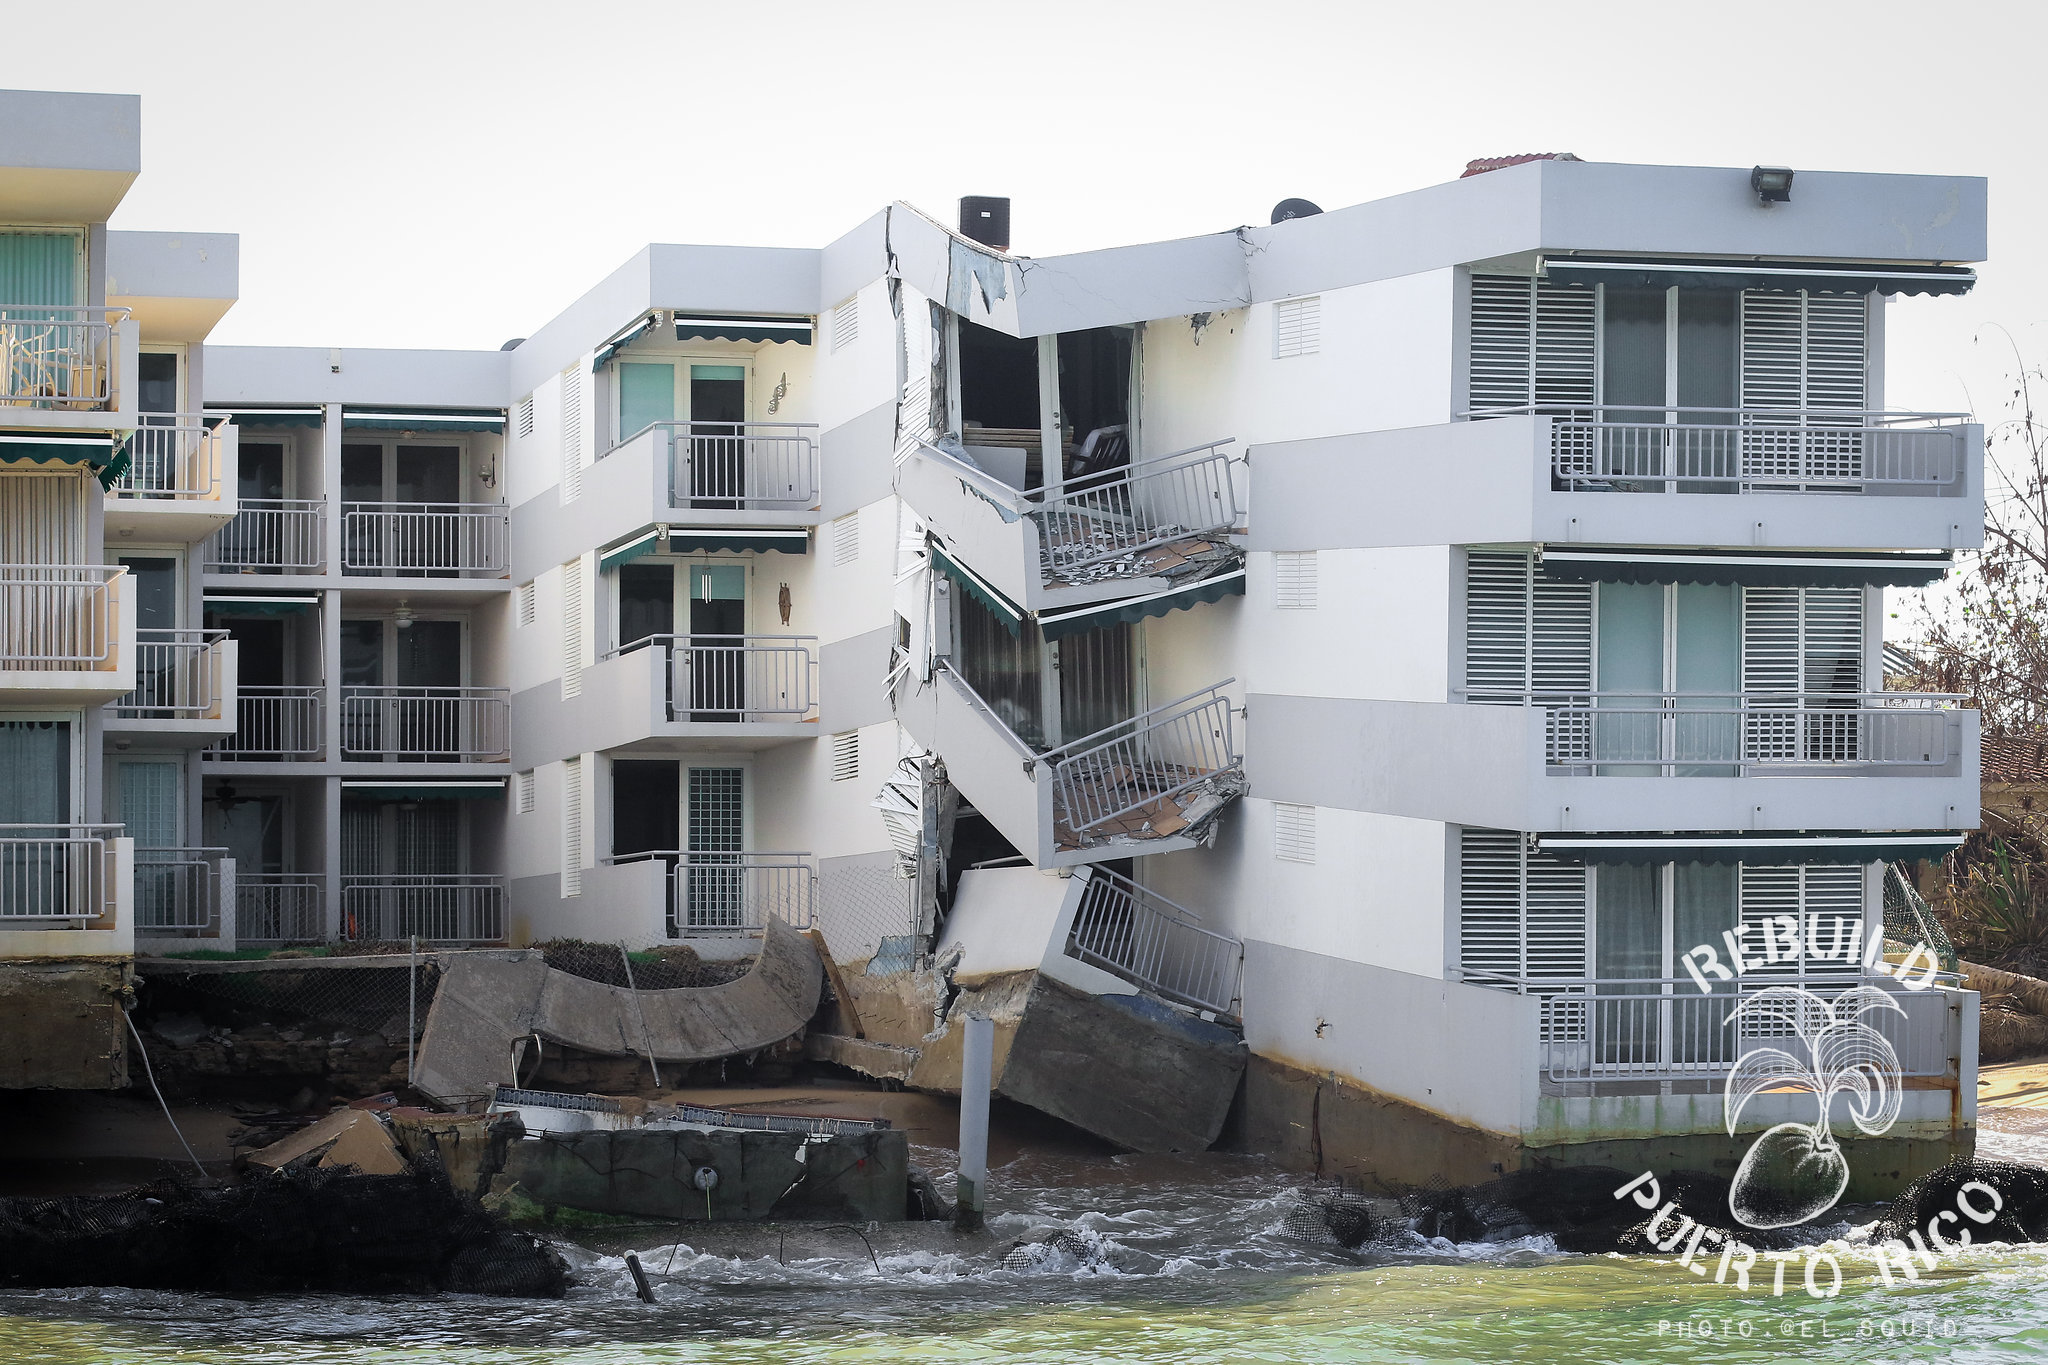 Concrete buildings collapsed as if an earthquake had shook the island. // Photo by Anthony Dooley